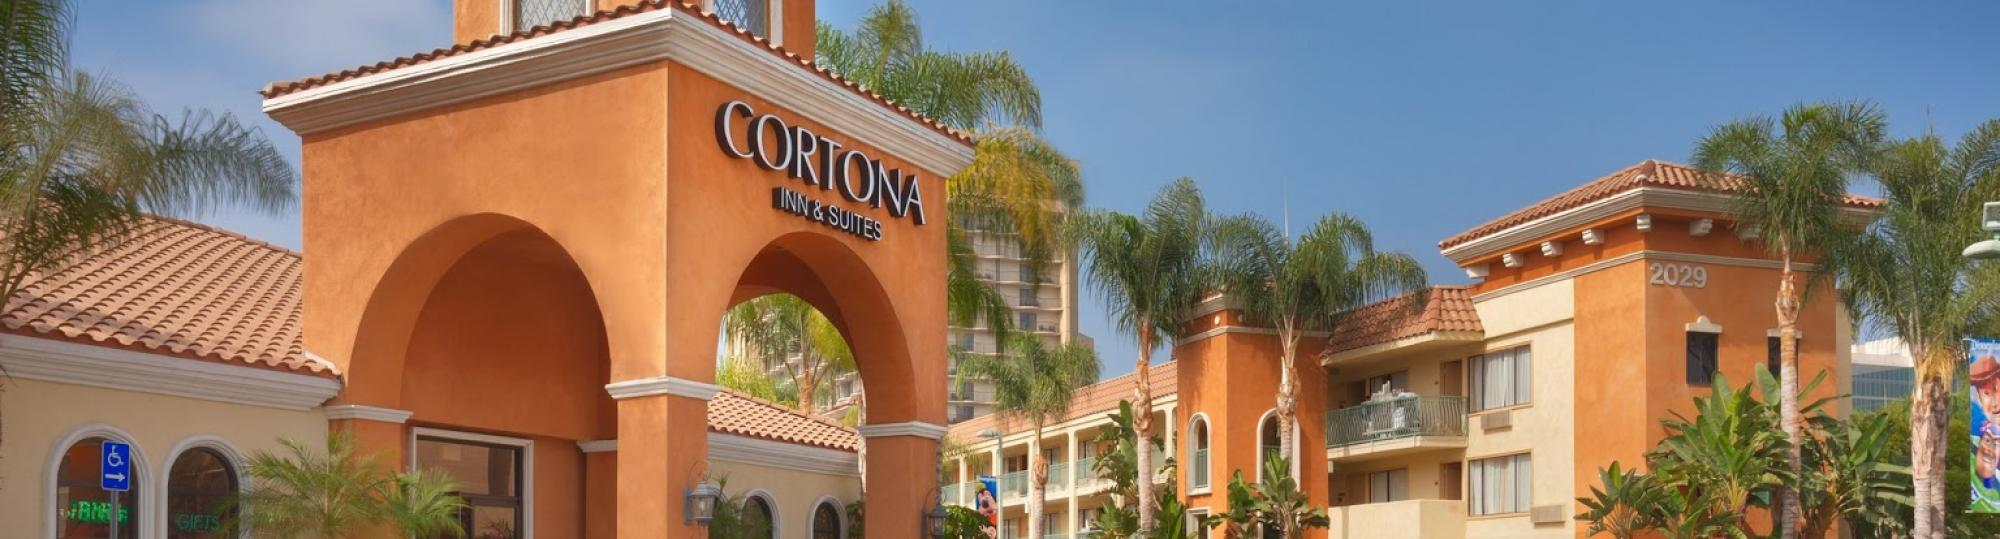 Cortona Inn & Suites Anaheim Resort Military Discount with Veterans Advantage